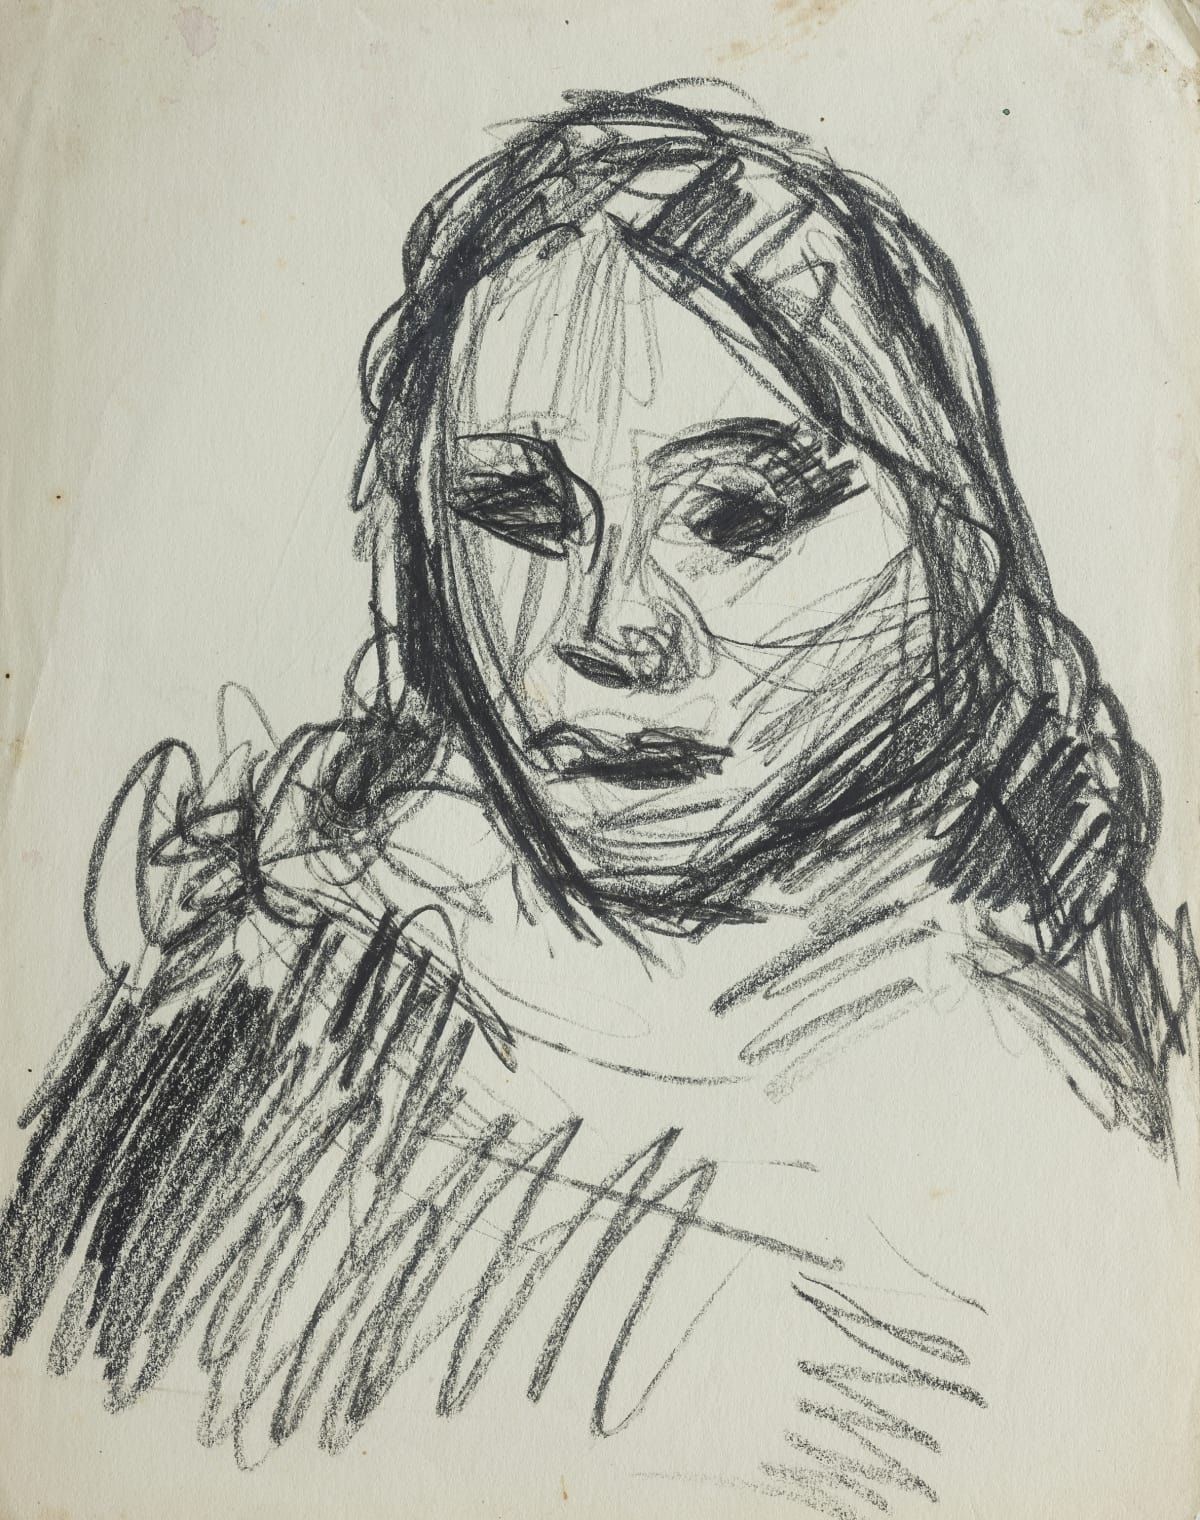 Mountford Tosswill Woollaston Head of a Maori Girl I, 1947 crayon on paper 310mm x 245mm